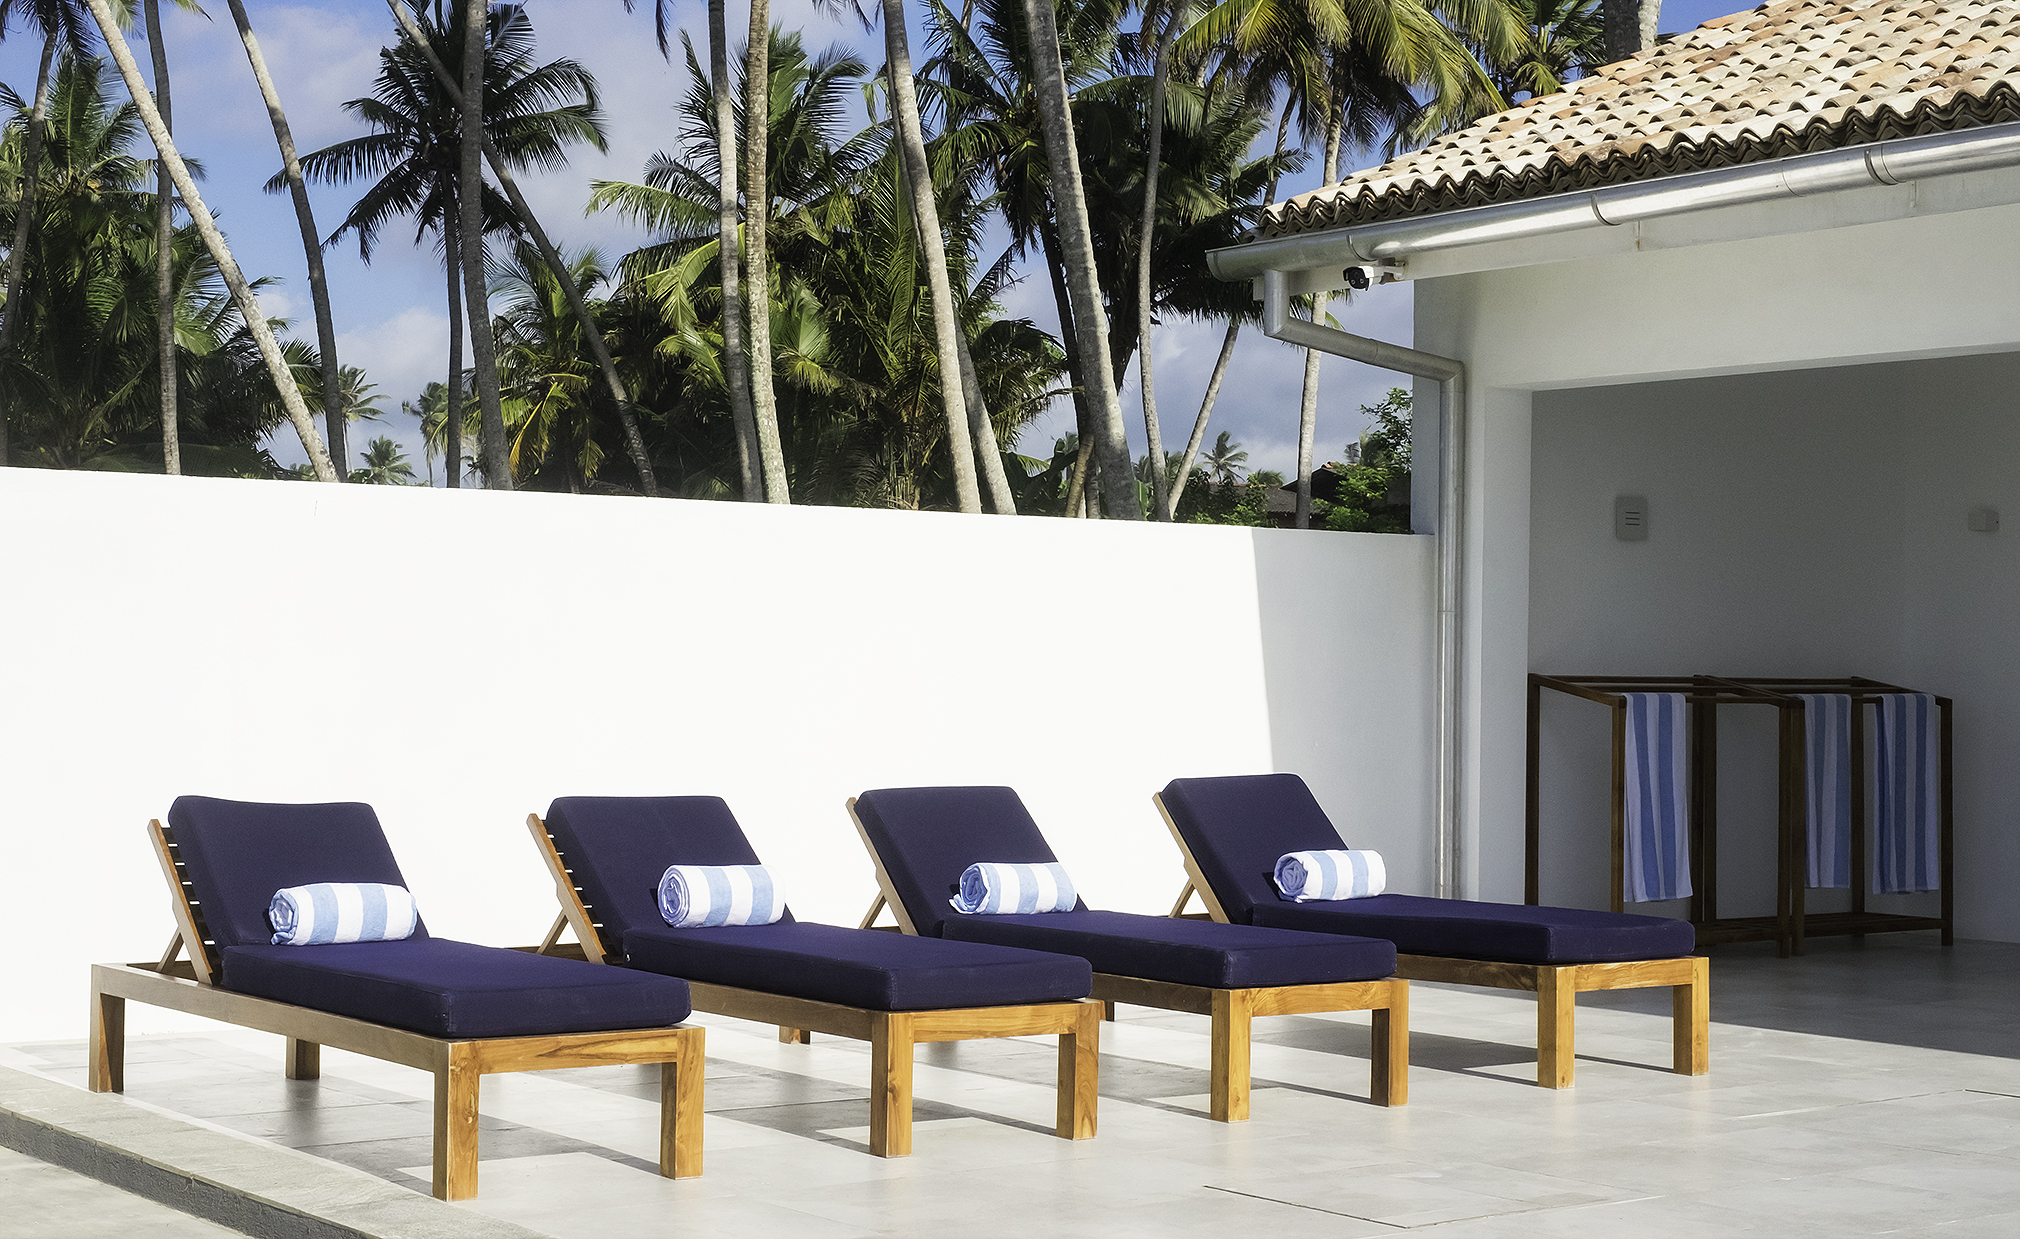 Sun lounges by the pool (with umbrellas available)